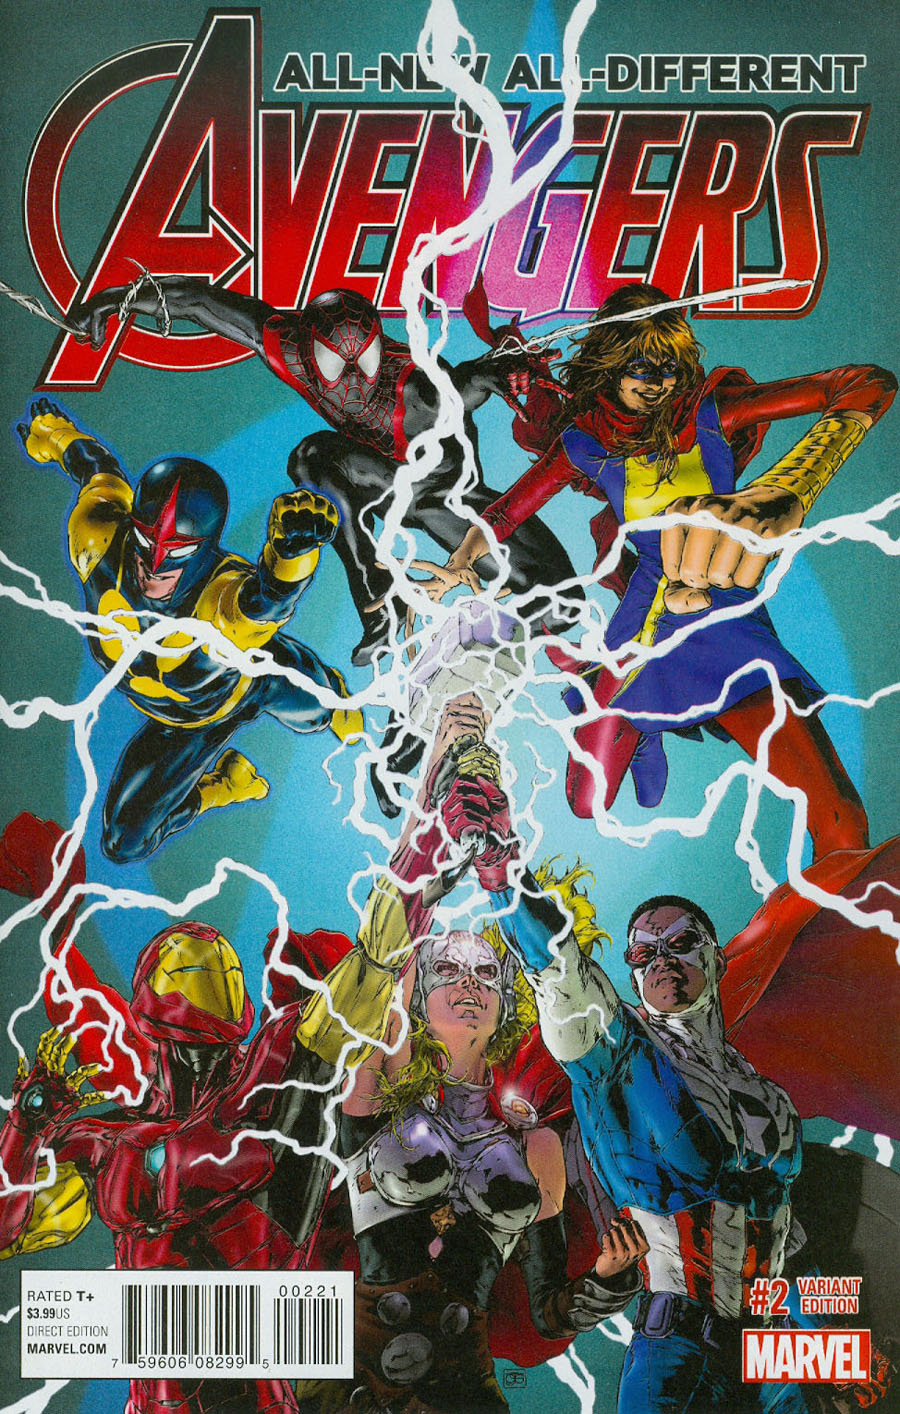 All-New All-Different Avengers #2 Cover B Incentive Oscar Jimenez Variant Cover